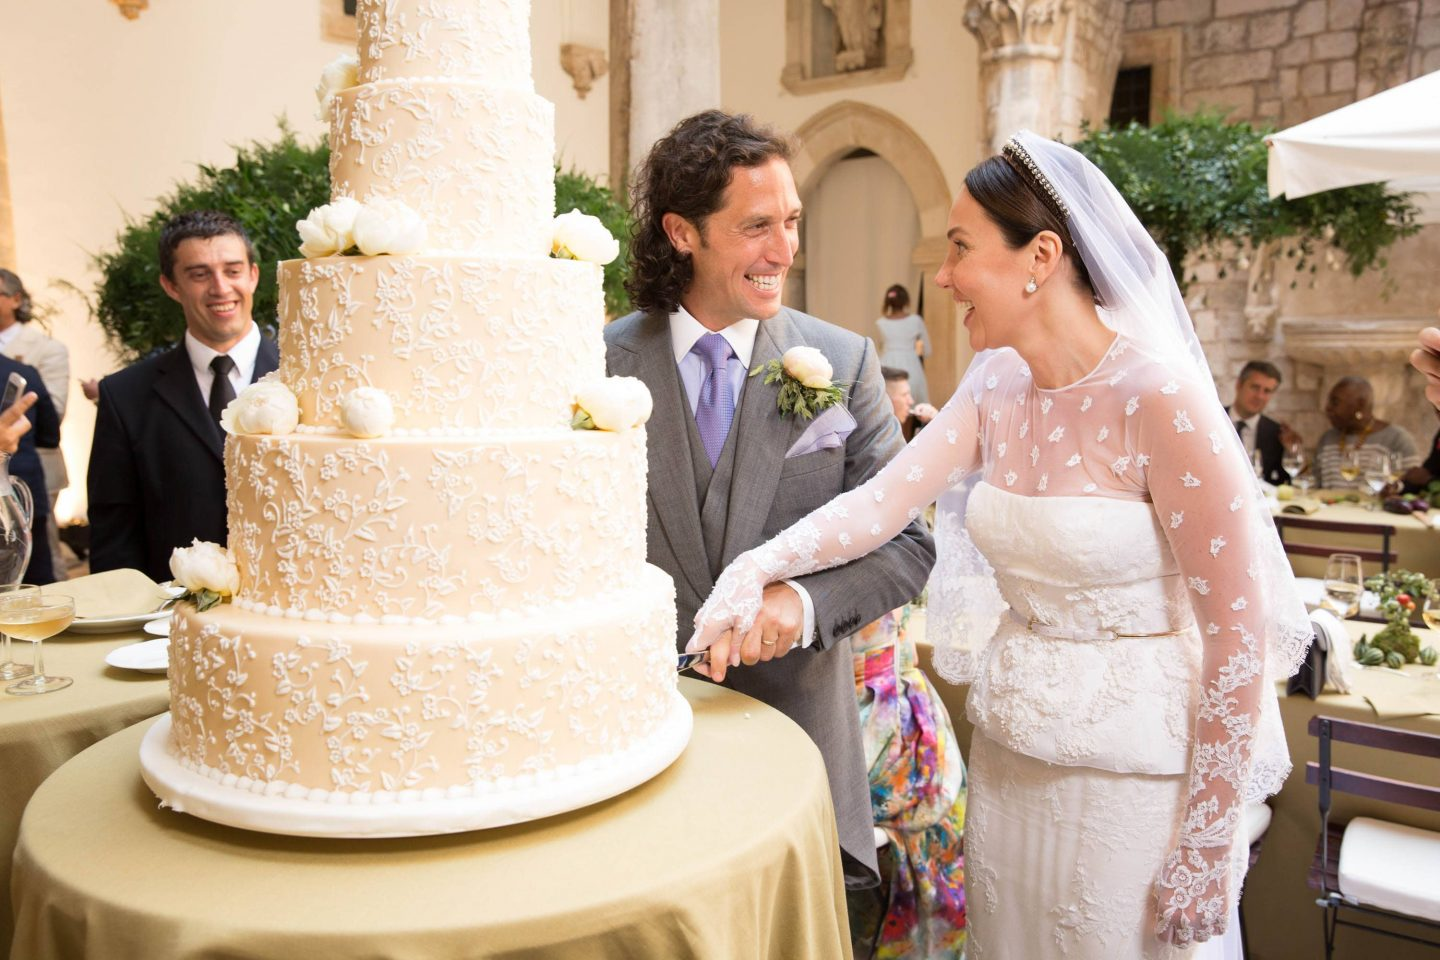 Cake cutting at this Dubrovnik Wedding in Croatia | Photo by Robert Fairer